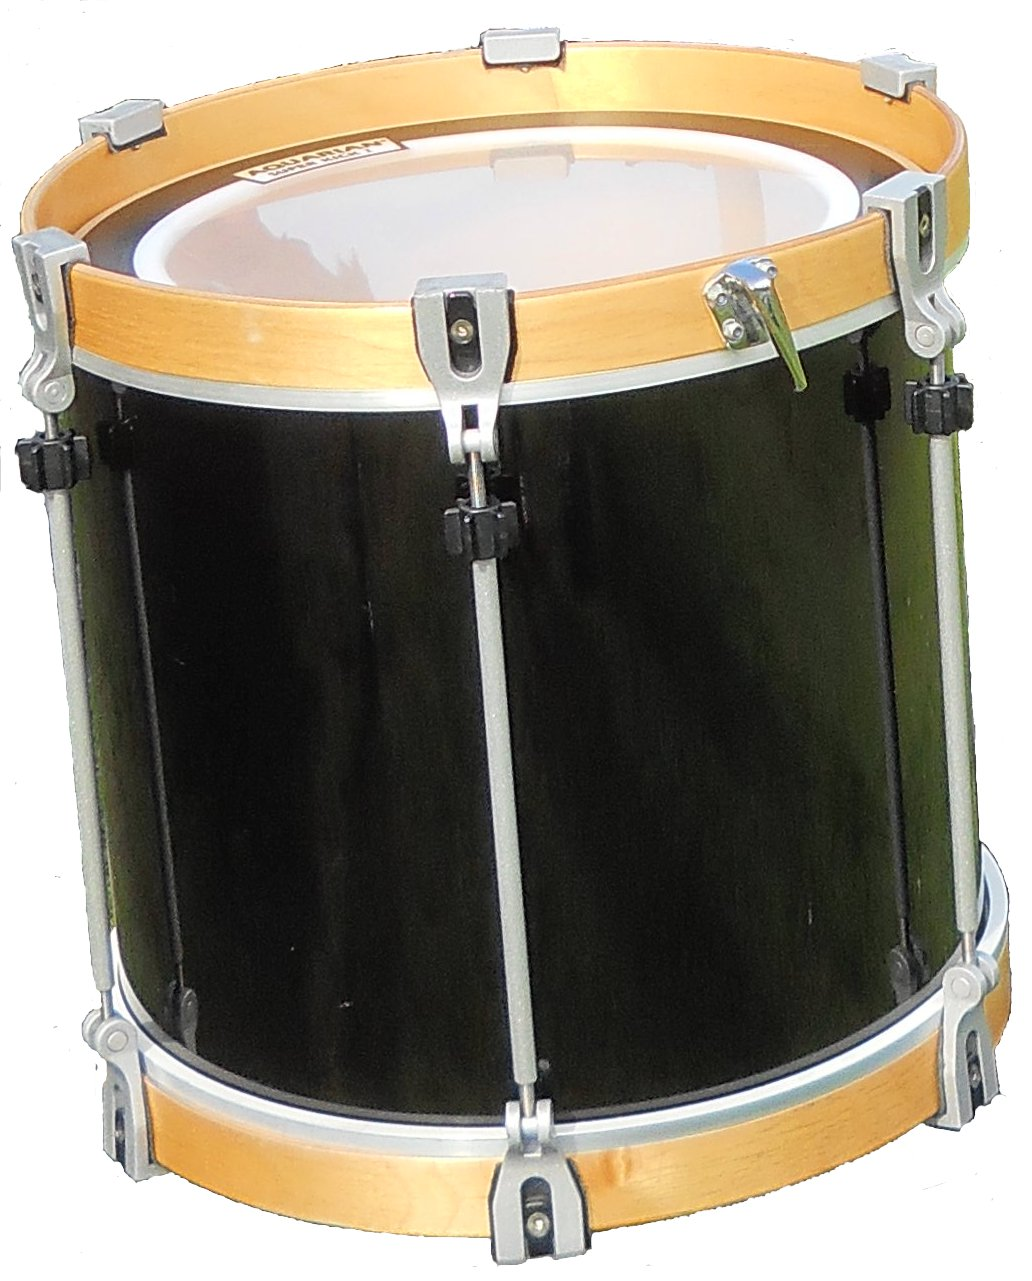 scottish tenor drum wikipedia